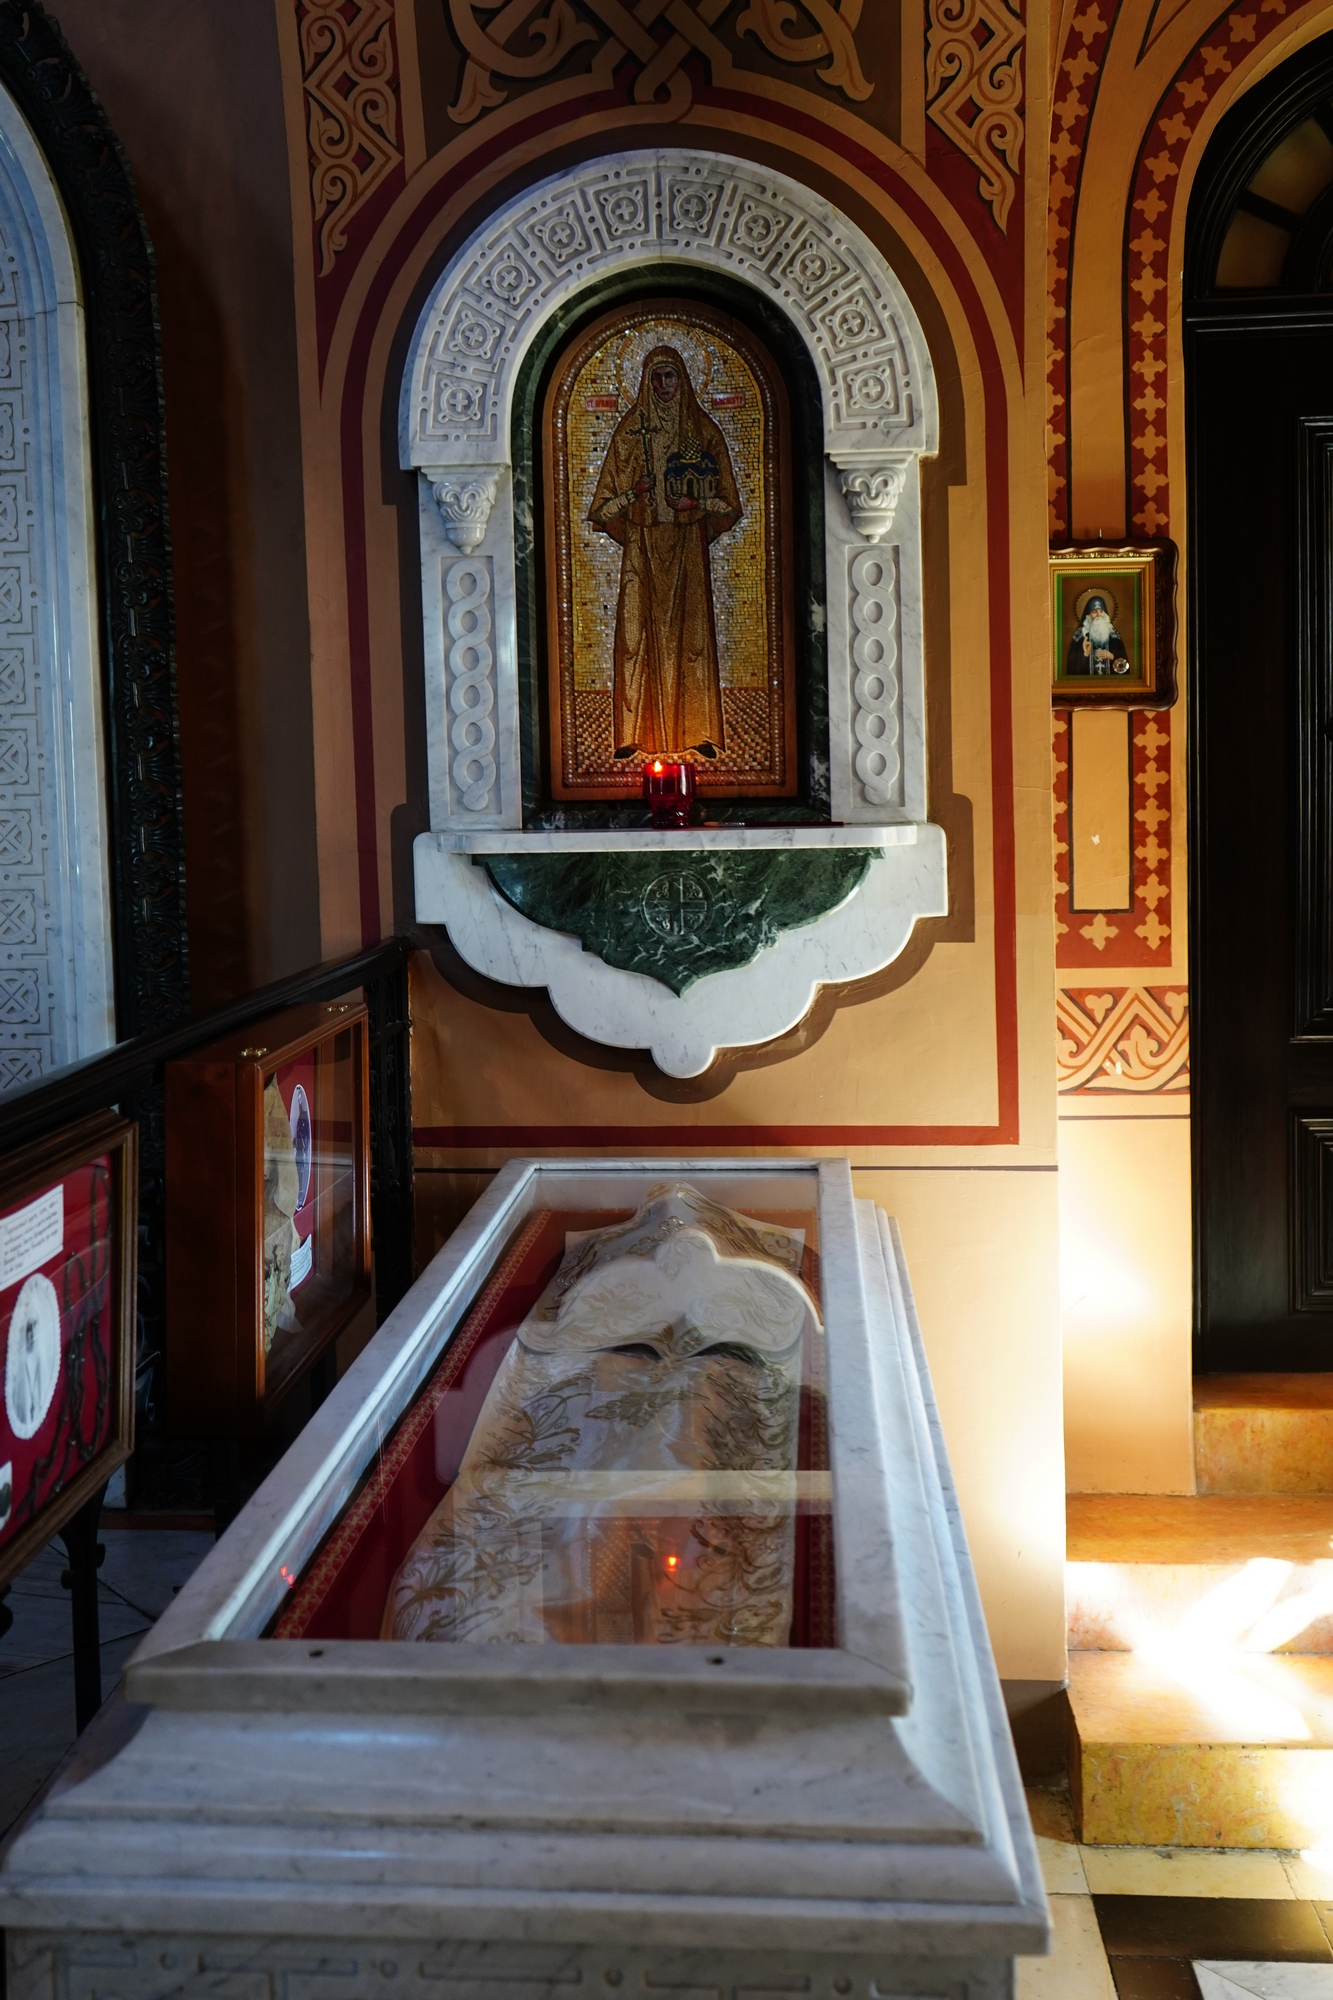 St. martyr Elisabeth relics in St. Marty Magdalene Russian Orthodox church in Jerusalem